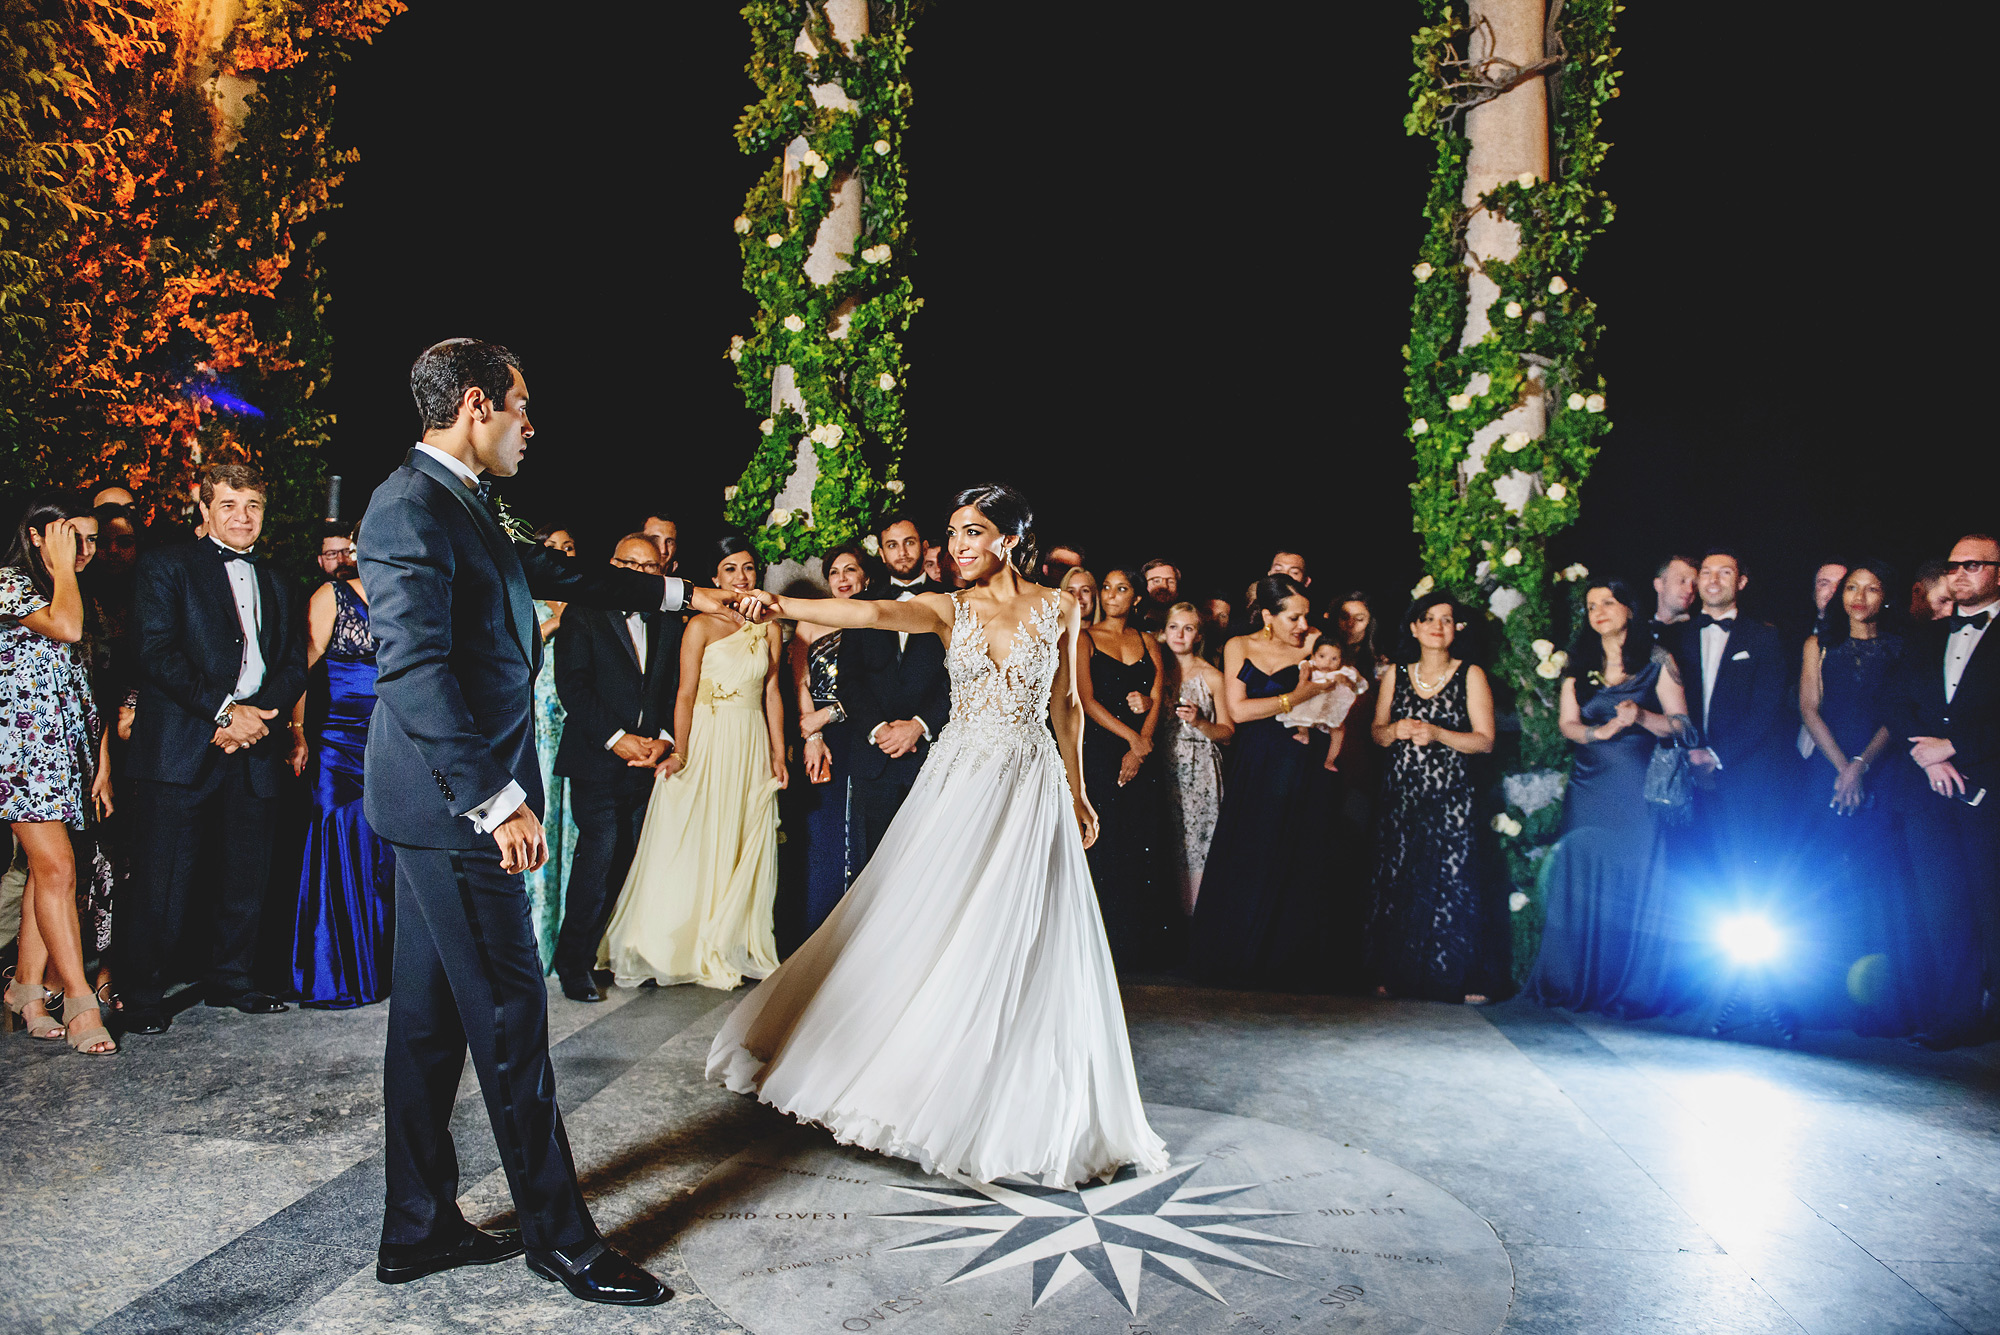 First dance photo by Ross Harvey